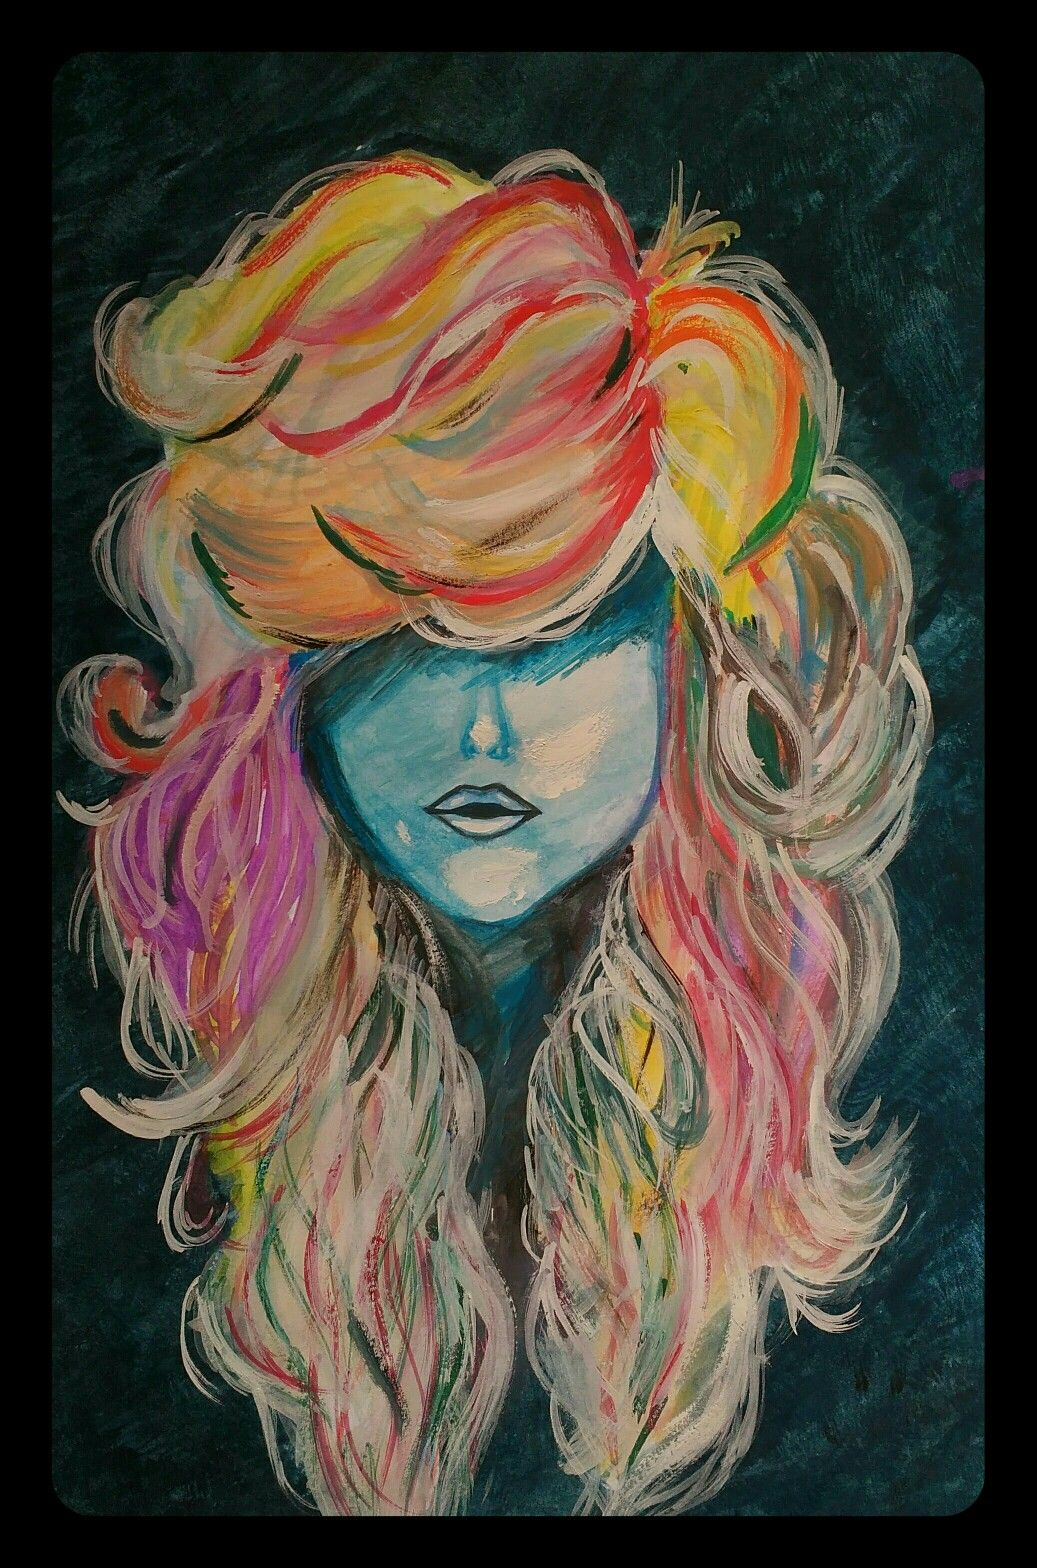 Art color hair - Vivid Hair Color Watercolors Cool Art Bold Fun Painting Girlboss